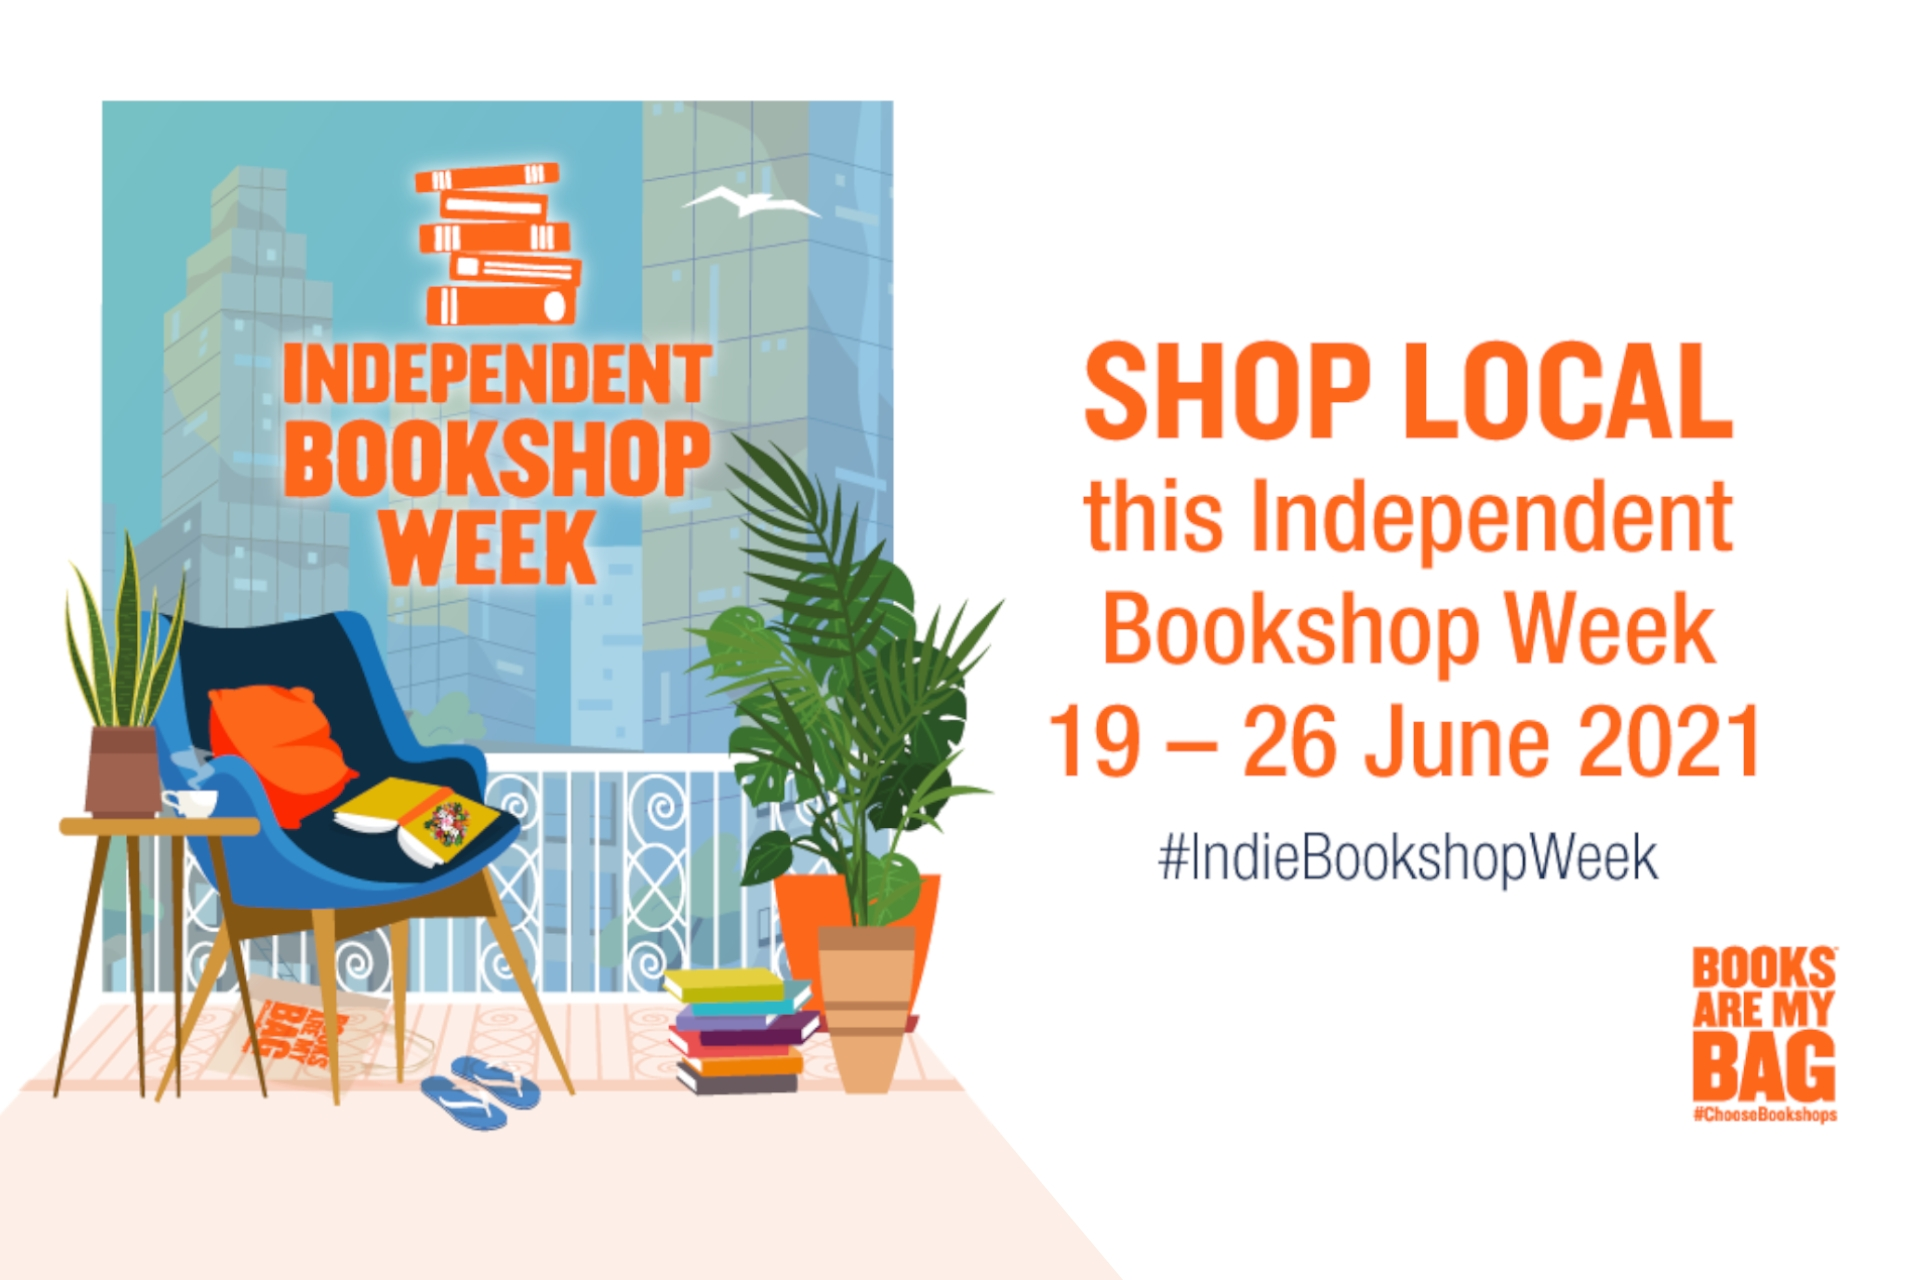 Lend a Helping Hand and Support #indiebookshops This Independent Bookshop Week: 19th-26th June